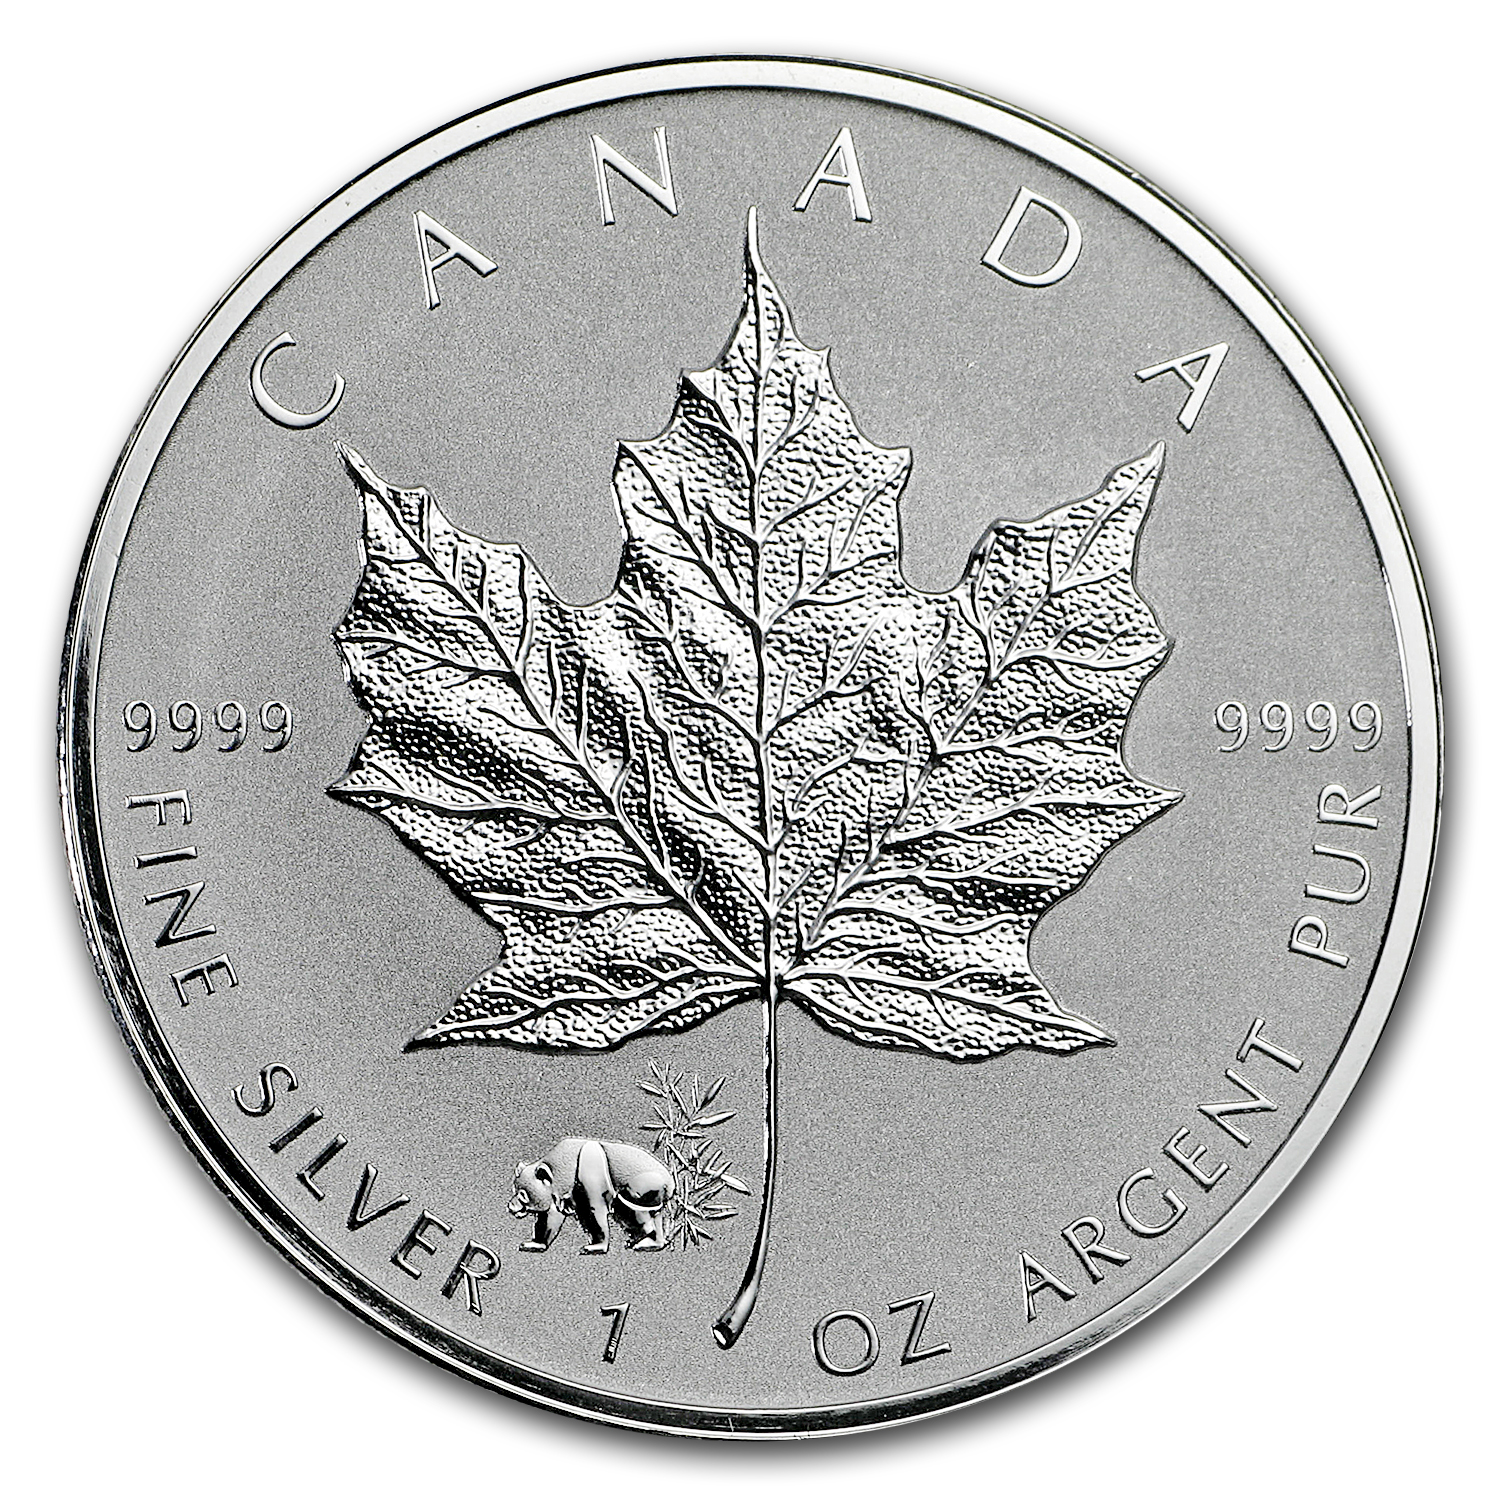 2017 Canada 1 oz Silver Maple Leaf Panda Privy BU